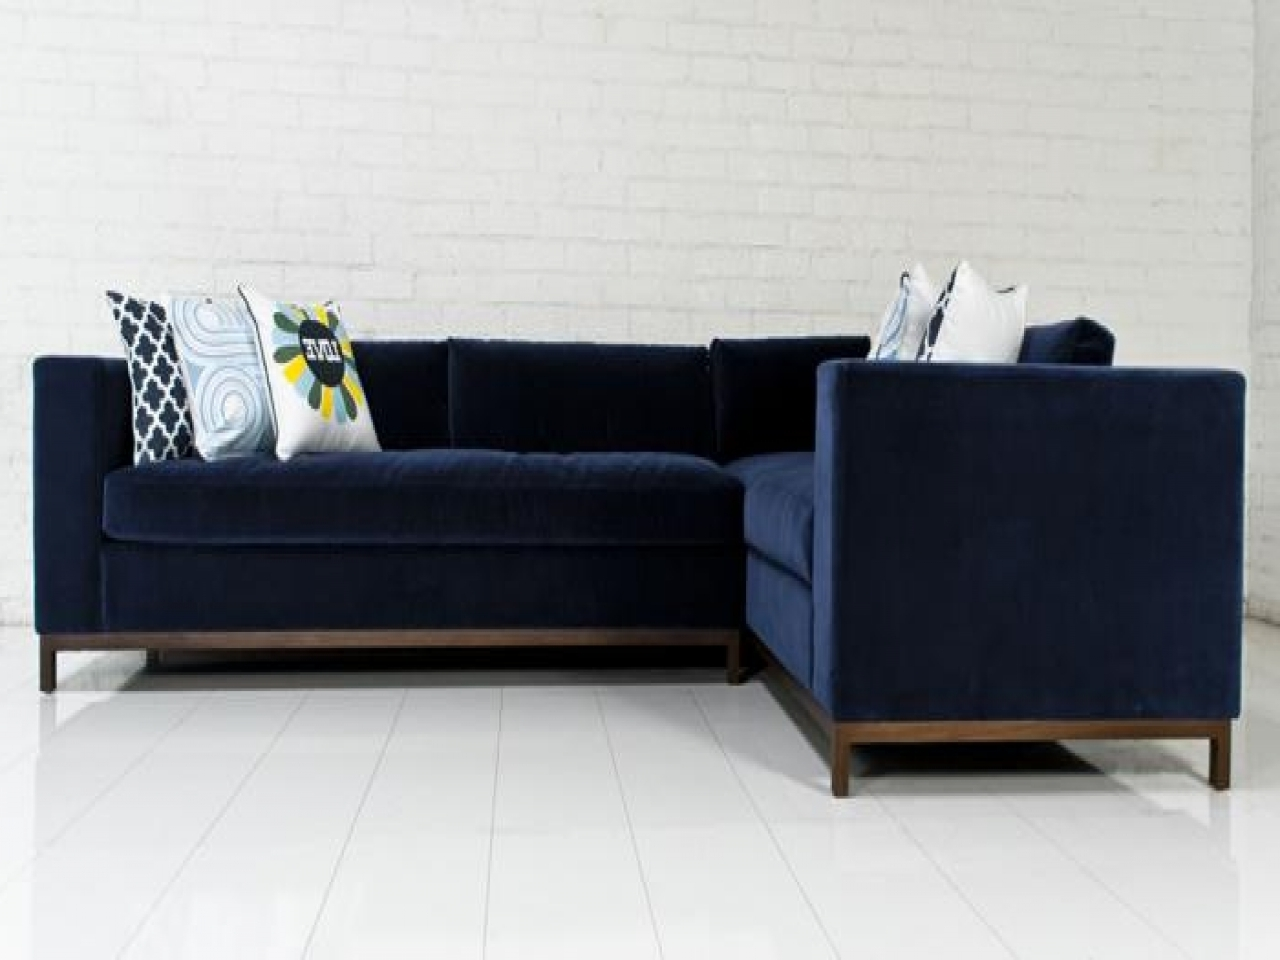 Velvet Sectional Sofas Throughout Most Popular Sofa : Blue Velvet Sectional Sofa Wallpaper Image Sectional Sofa (Gallery 5 of 20)